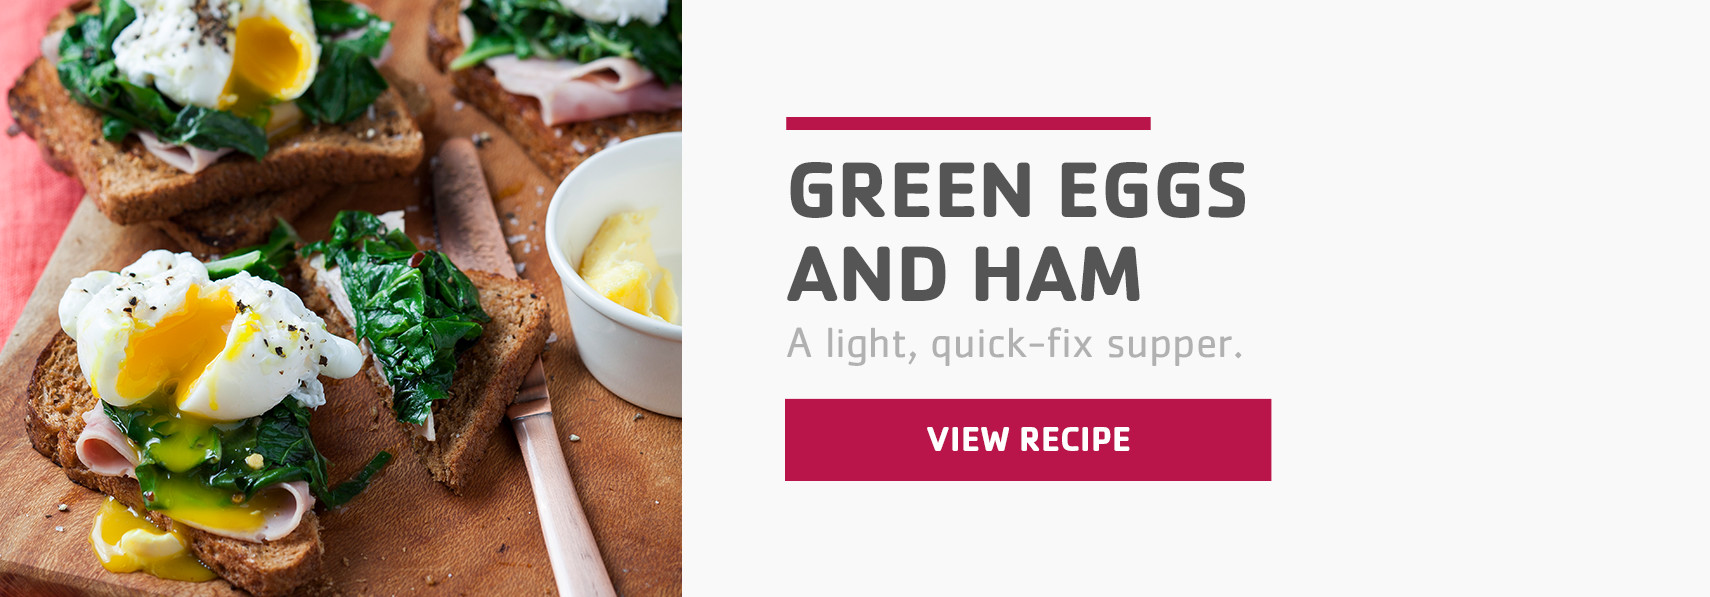 03_Lunchbox-Green_eggs&ham.jpg